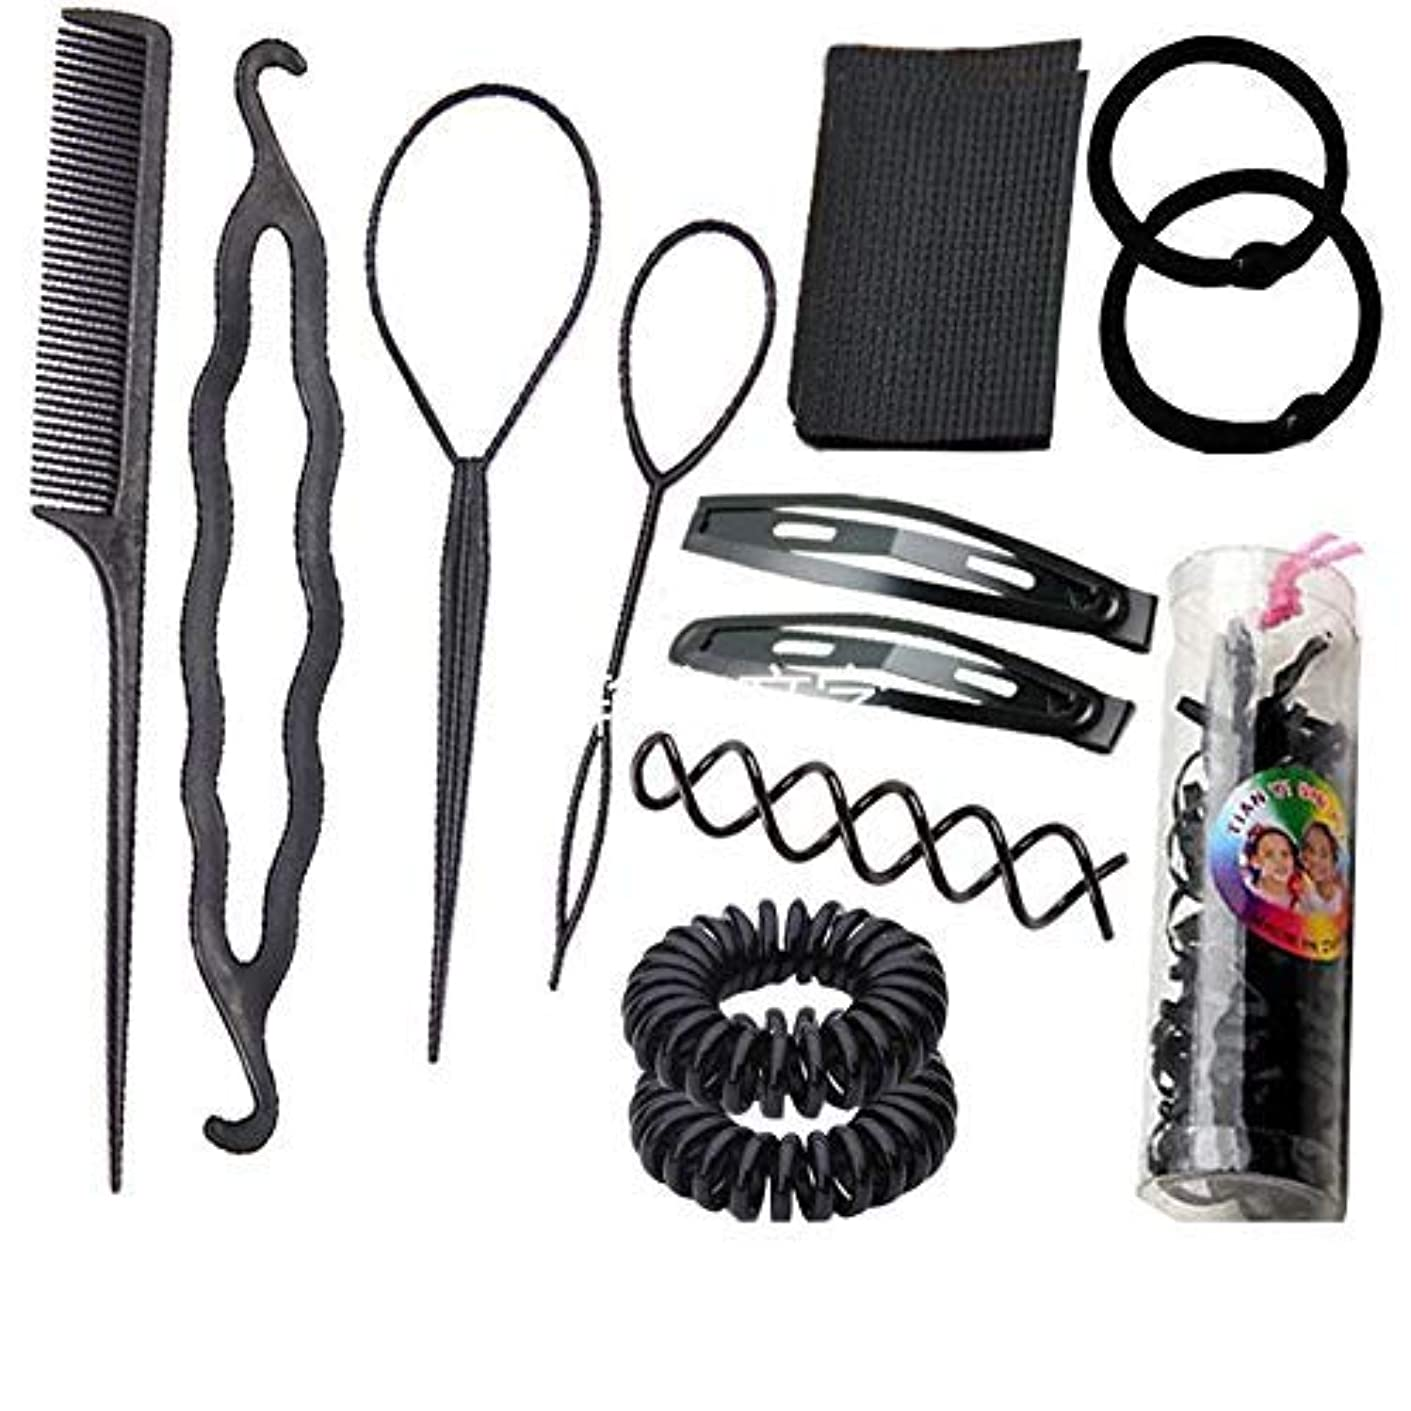 1 Set Black 13 in 1 Hair Style Making Accessories Kits Hair Comb Metal Hairpins Hair Tools Hair Ropes Fringes...